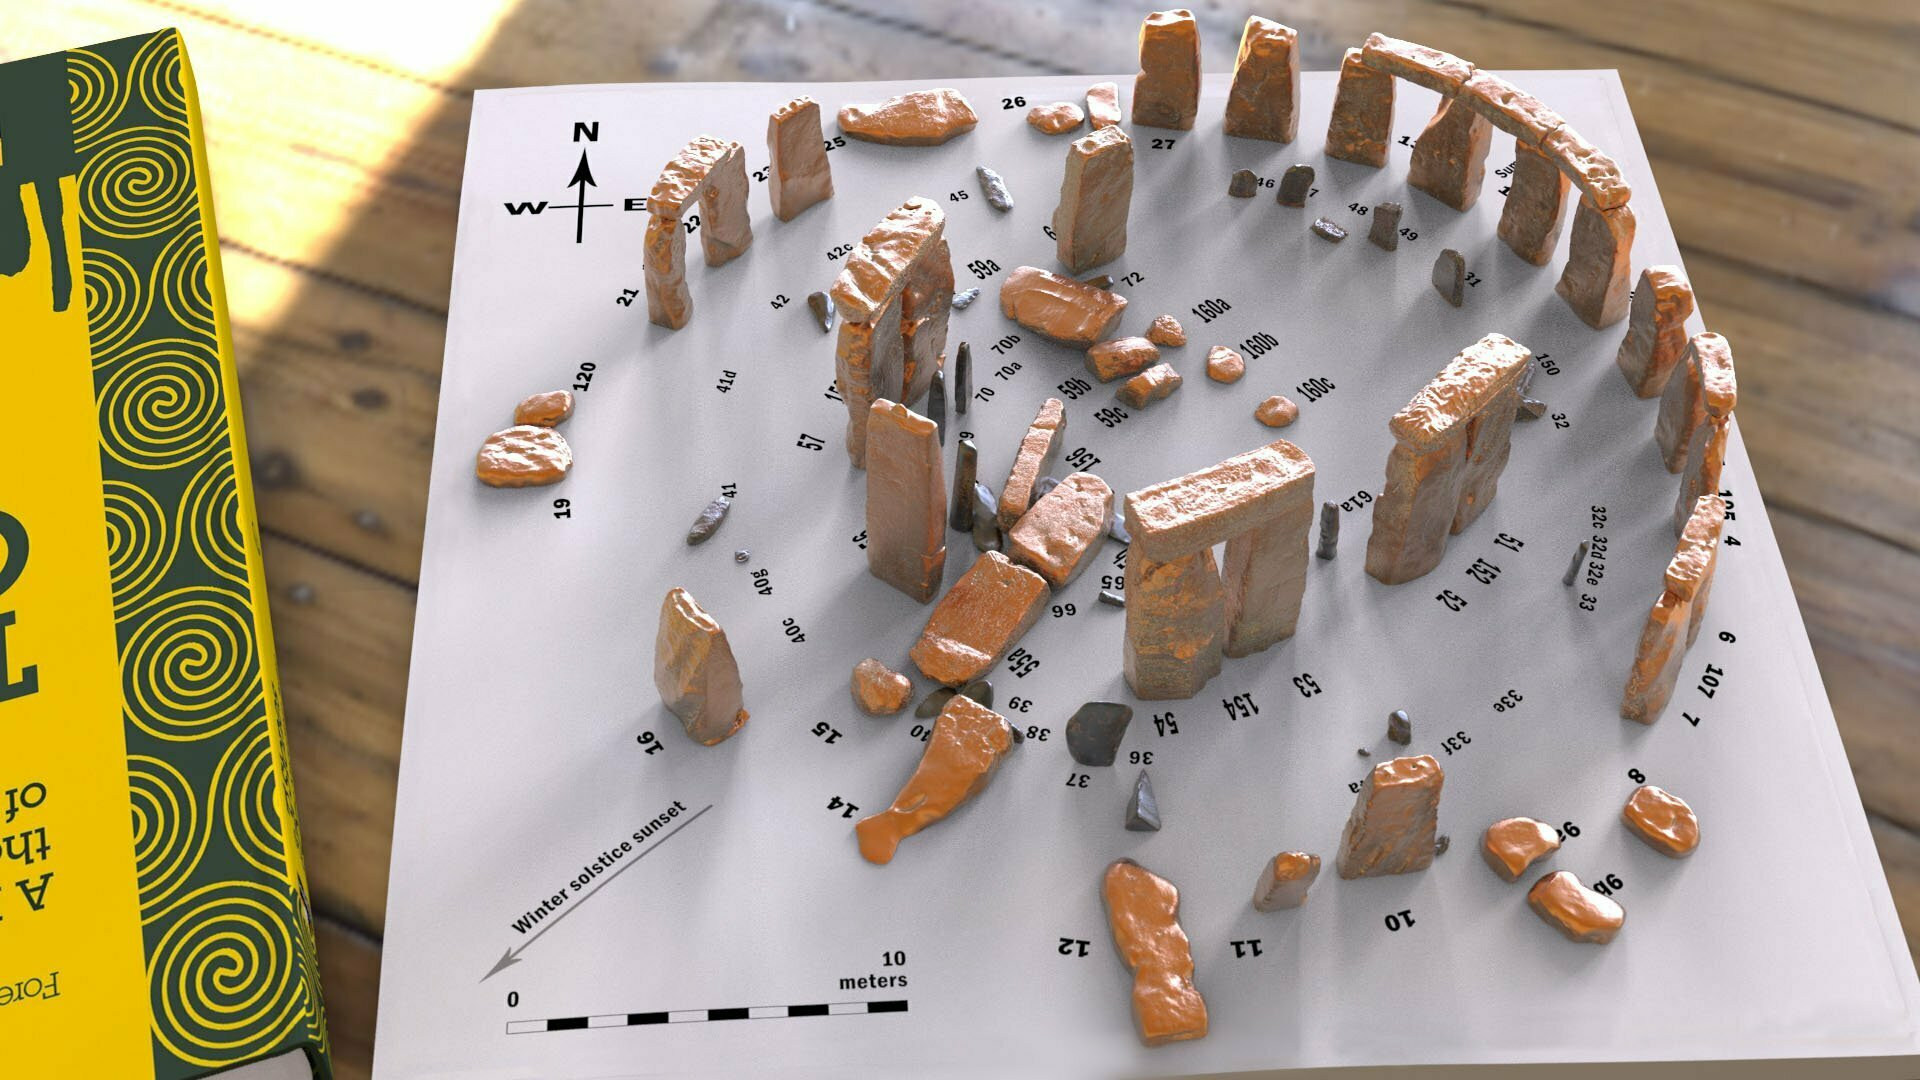 Buy Stonehenge Models: Verdigris copper Stonehenge replica models at 200th scale on plain white map with numbered stones accurate and highly detailed 008  - 200th scale pick n mix -